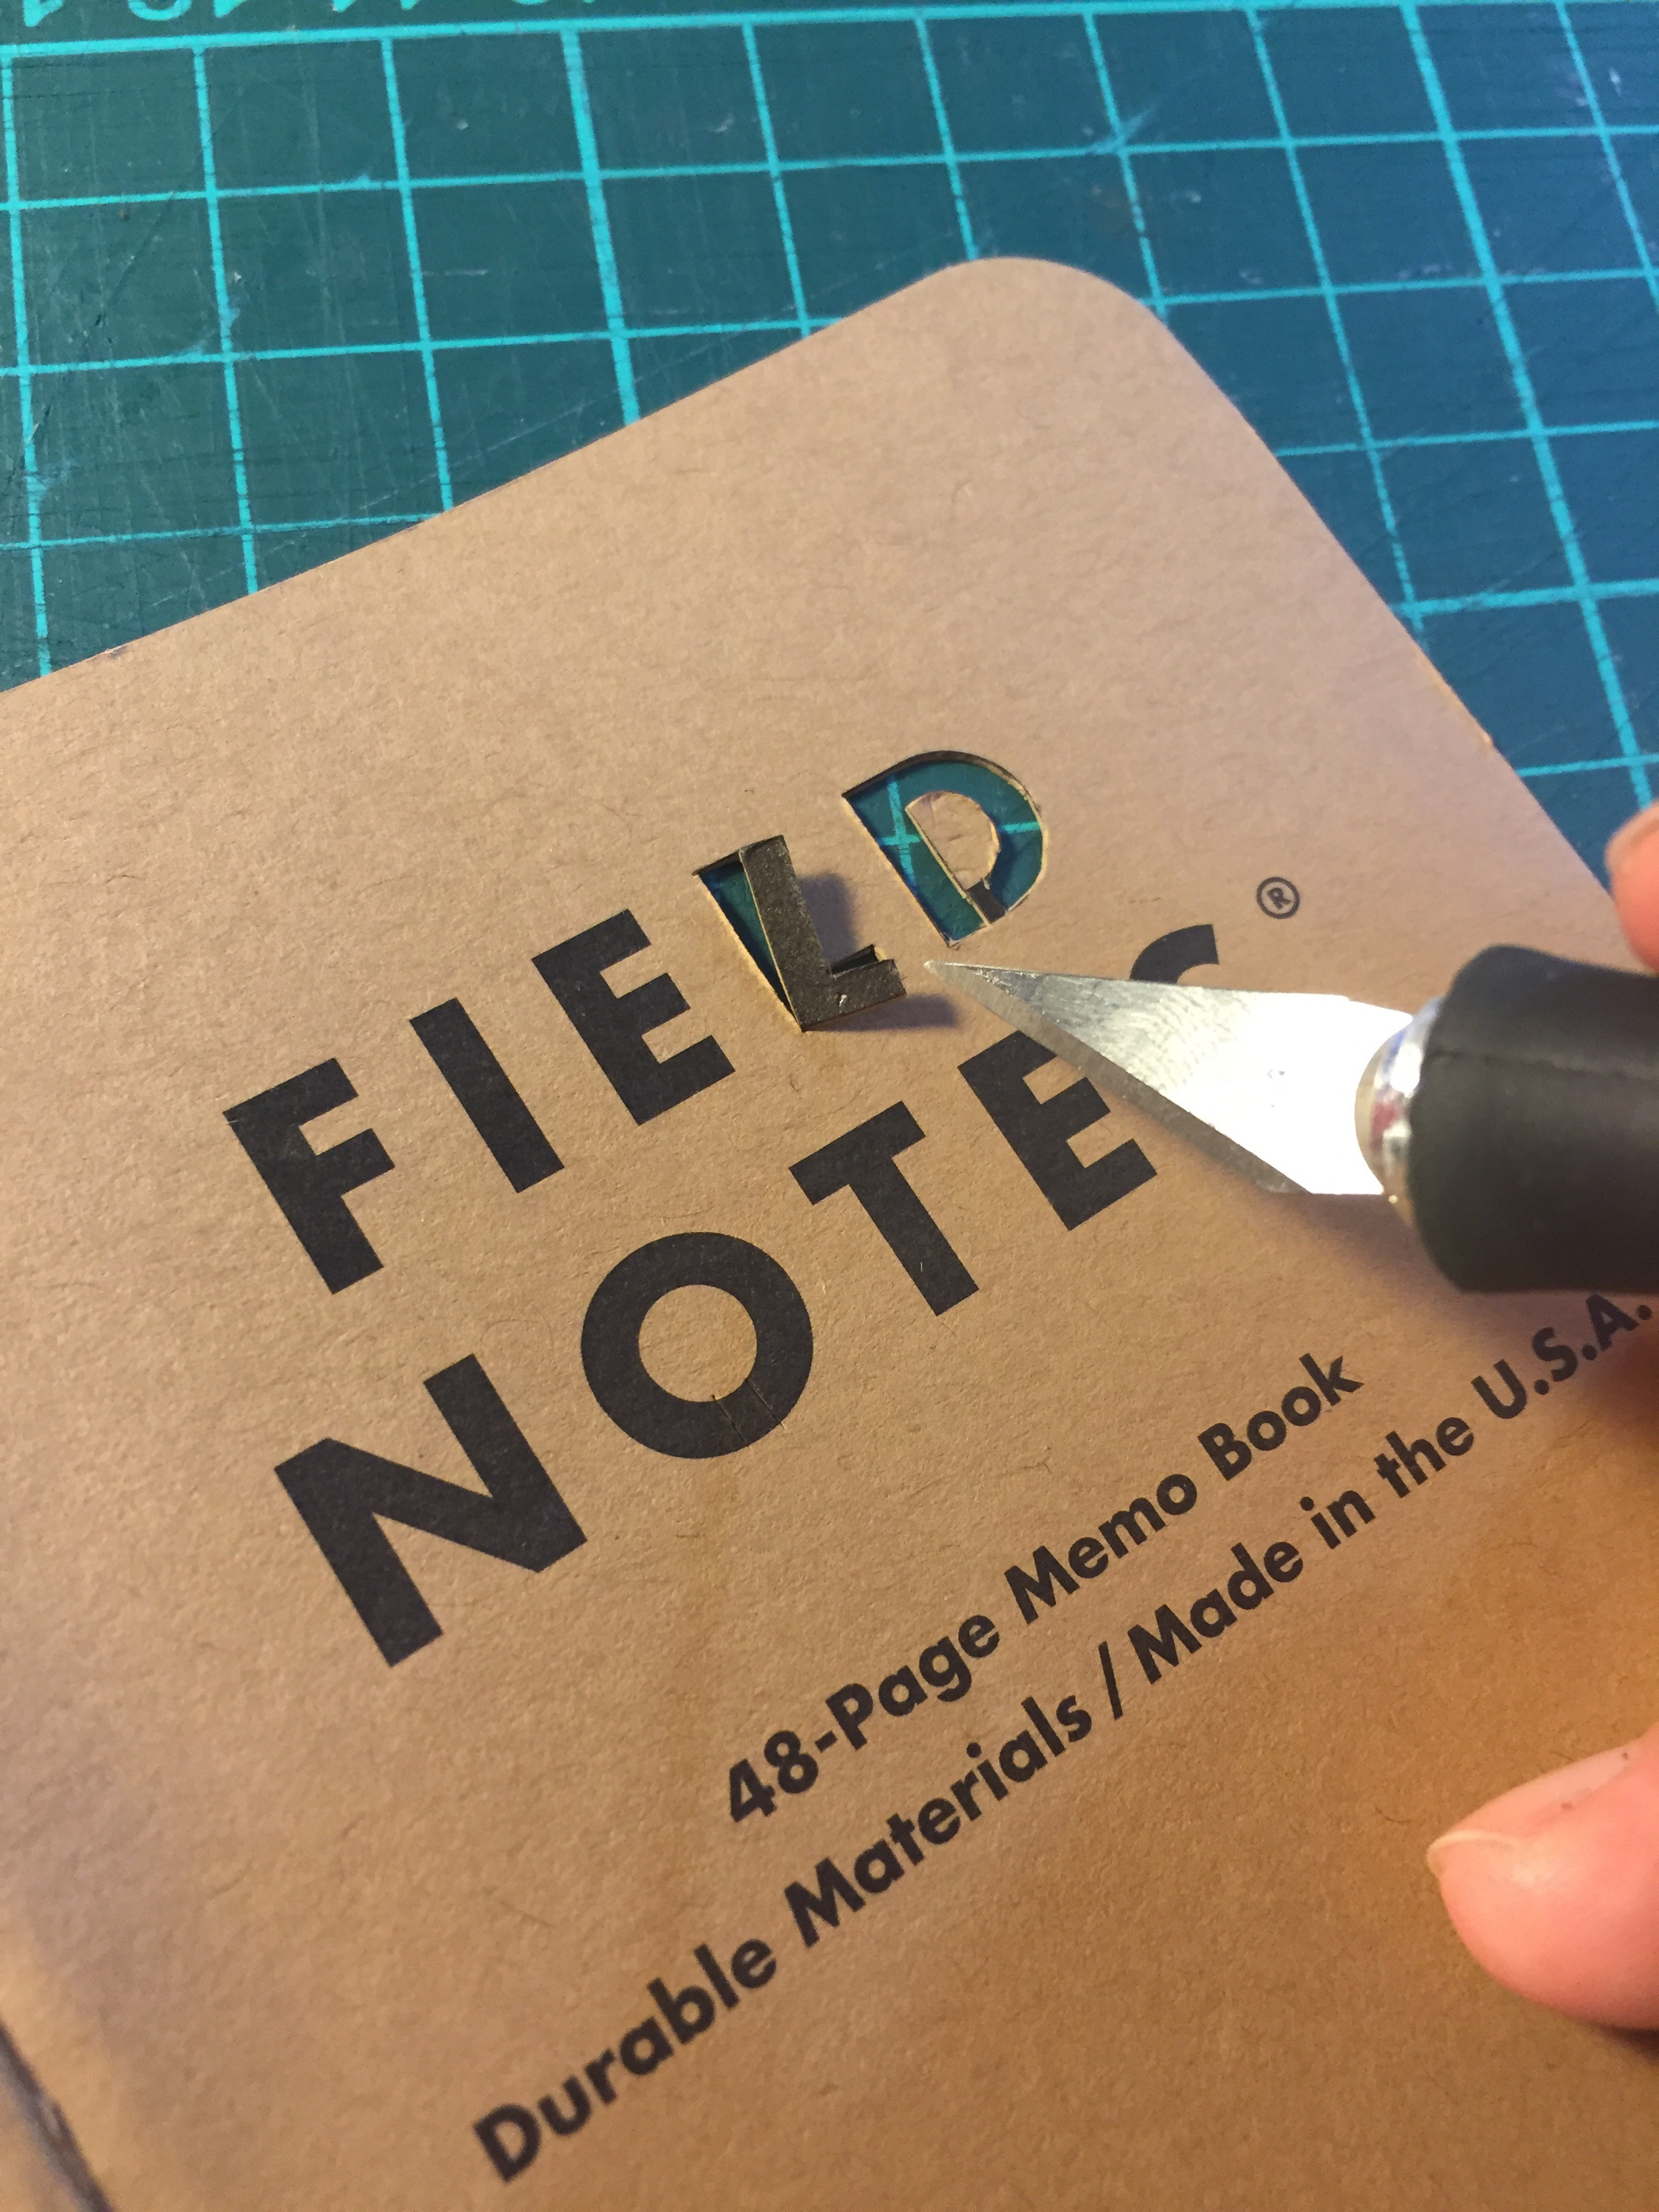 Next I took one of the plain Kraft notebooks - I really wanted to make something of the iconic Field Notes text on the front - I decided it would look really good to cut out the letters and stick some funky tape behind it